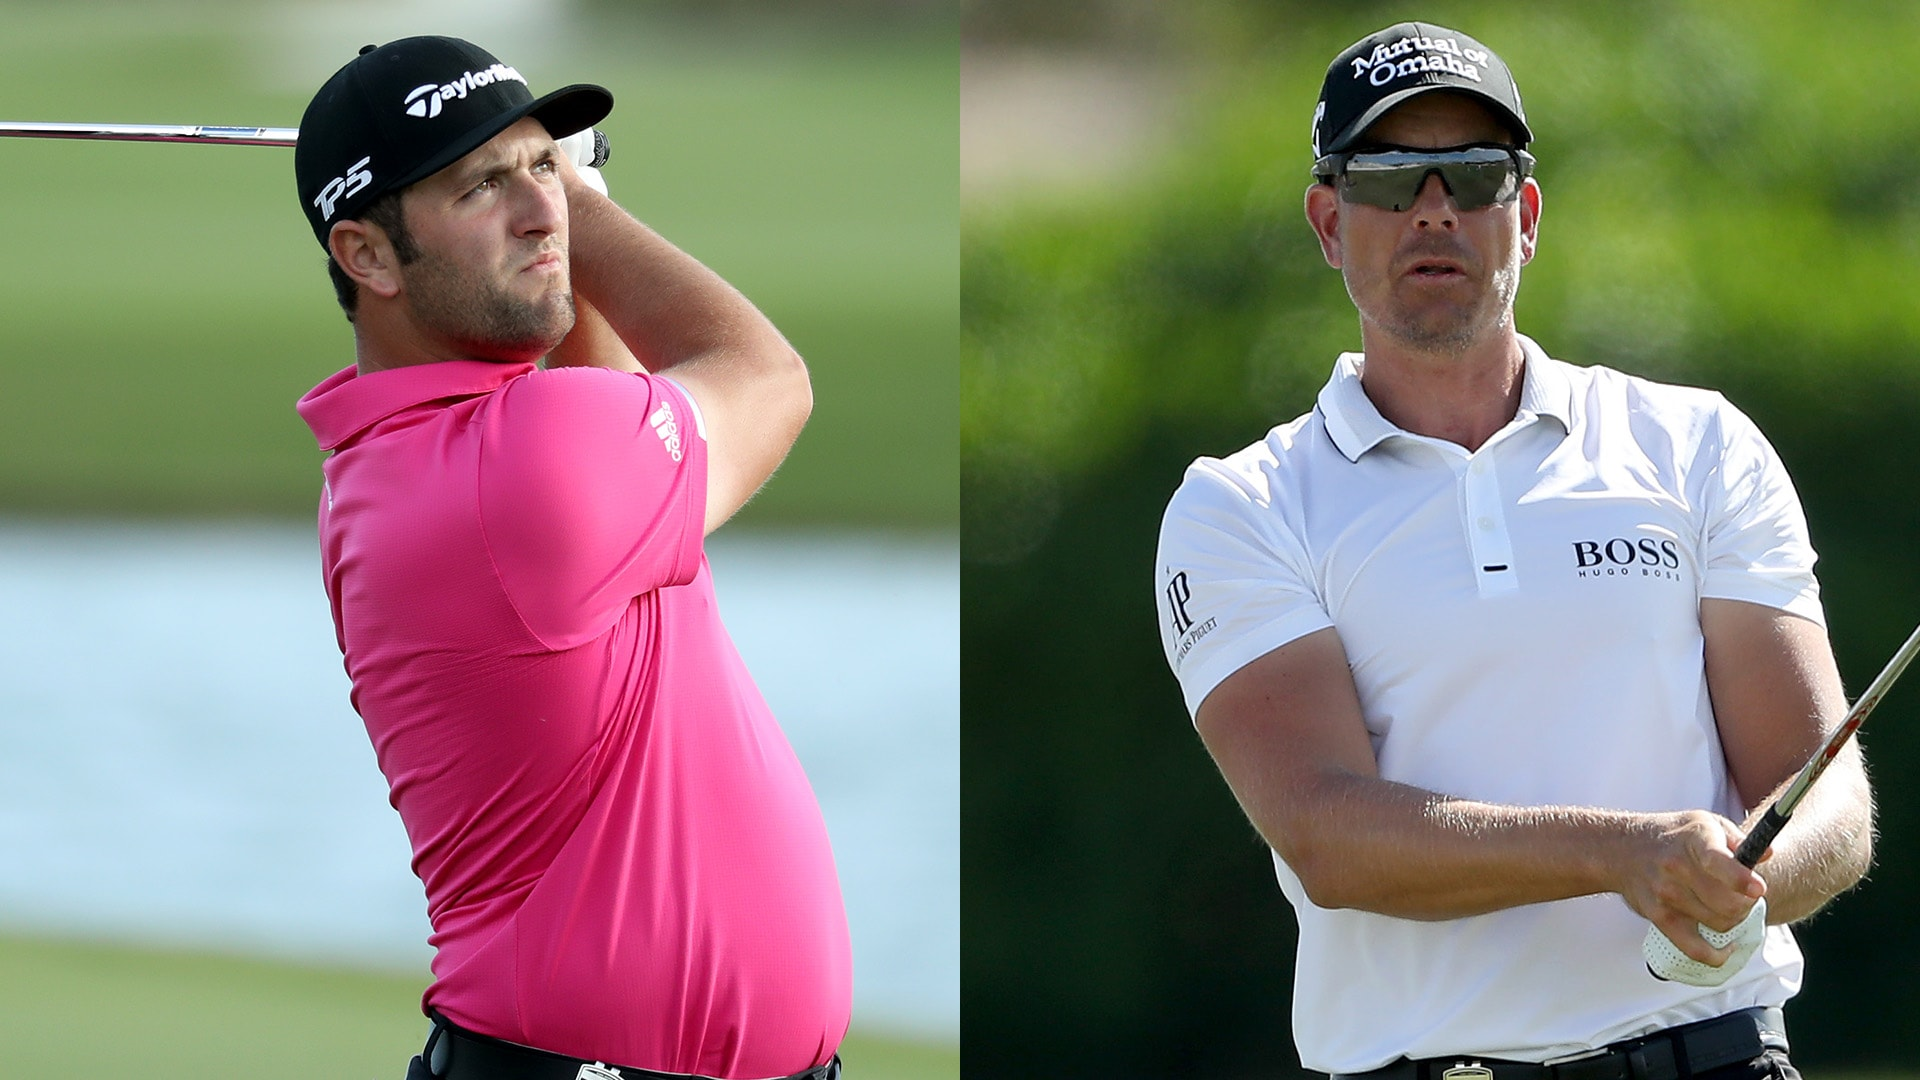 Jon Rahm and Henrik Stenson at the 2018 Hero World Challenge